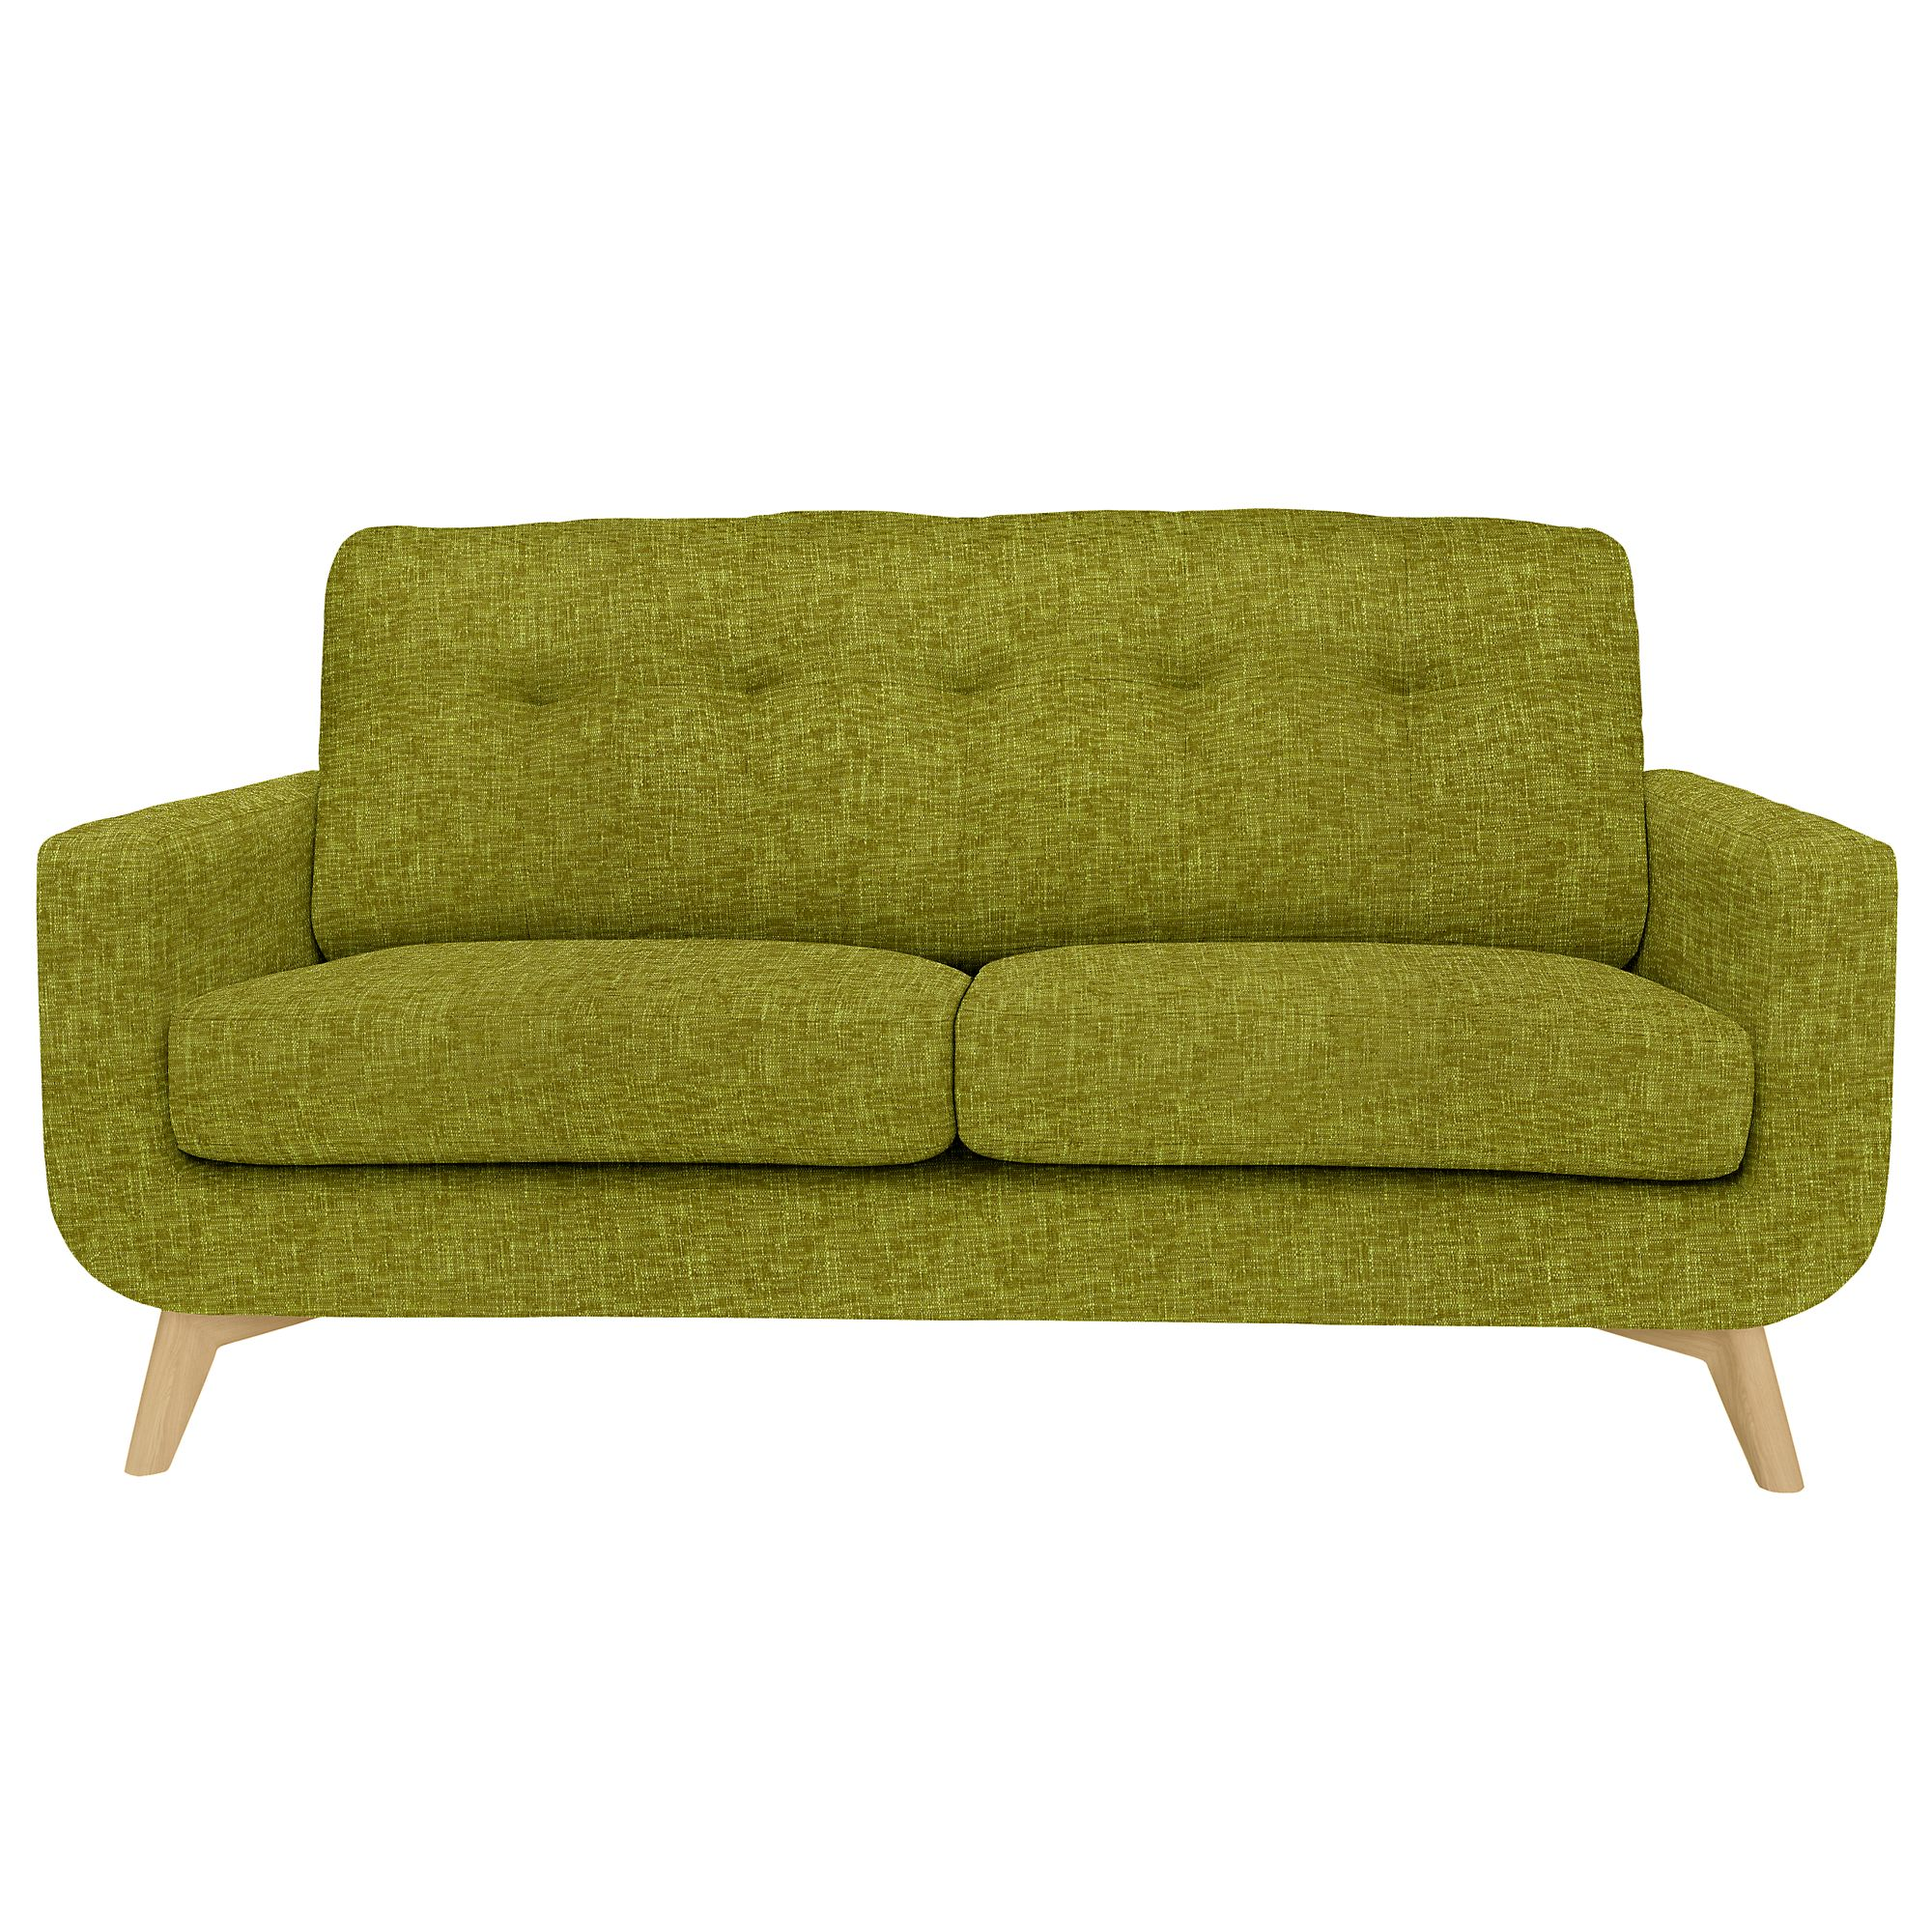 green retro furniture : 230824140 from comparestoreprices.co.uk size 1600 x 1600 jpeg 404kB